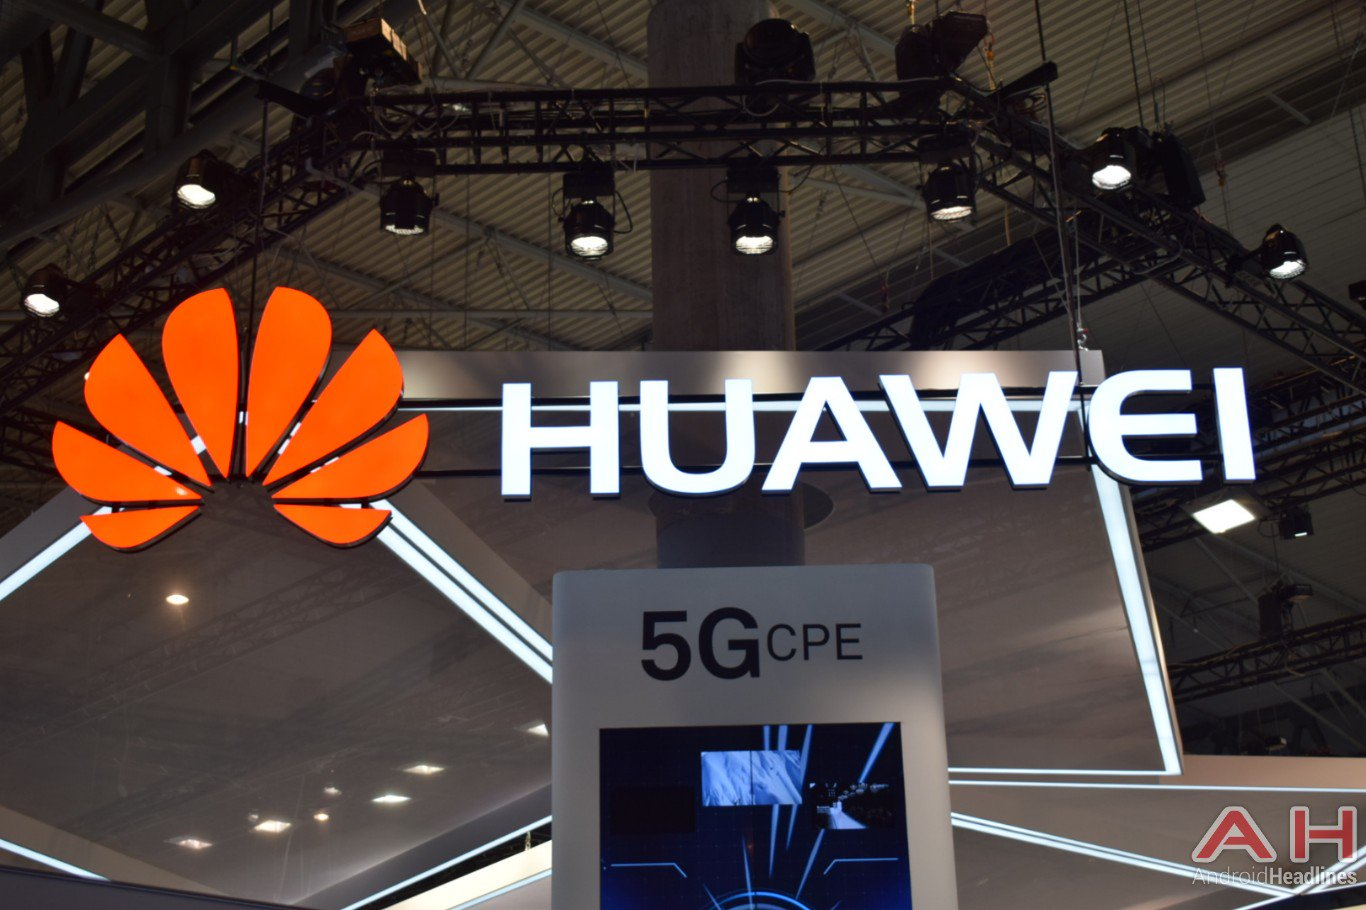 5g-internet-technology-china8217s-telecom-giant-huawei-is-leading-the-us.-is-falling-behind-8211-global-research